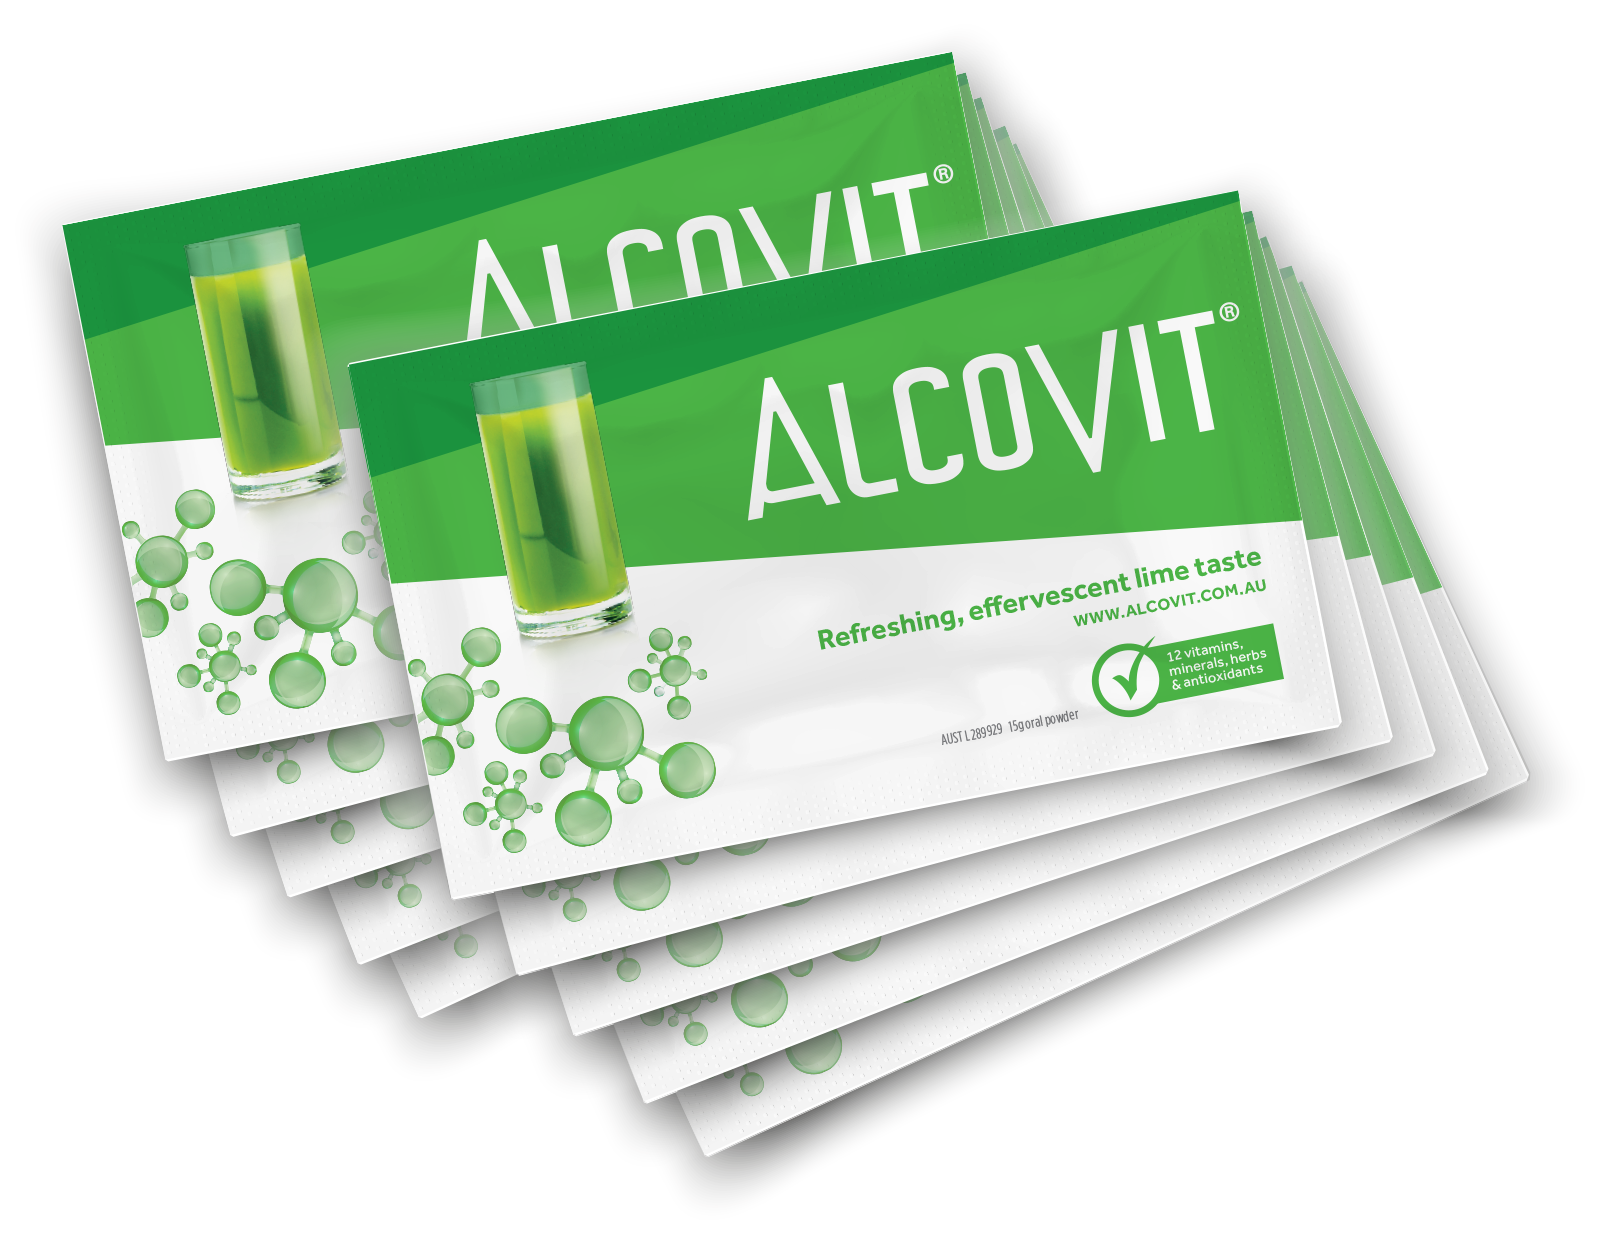 1 x Alcovit 25 pack sweepstakes